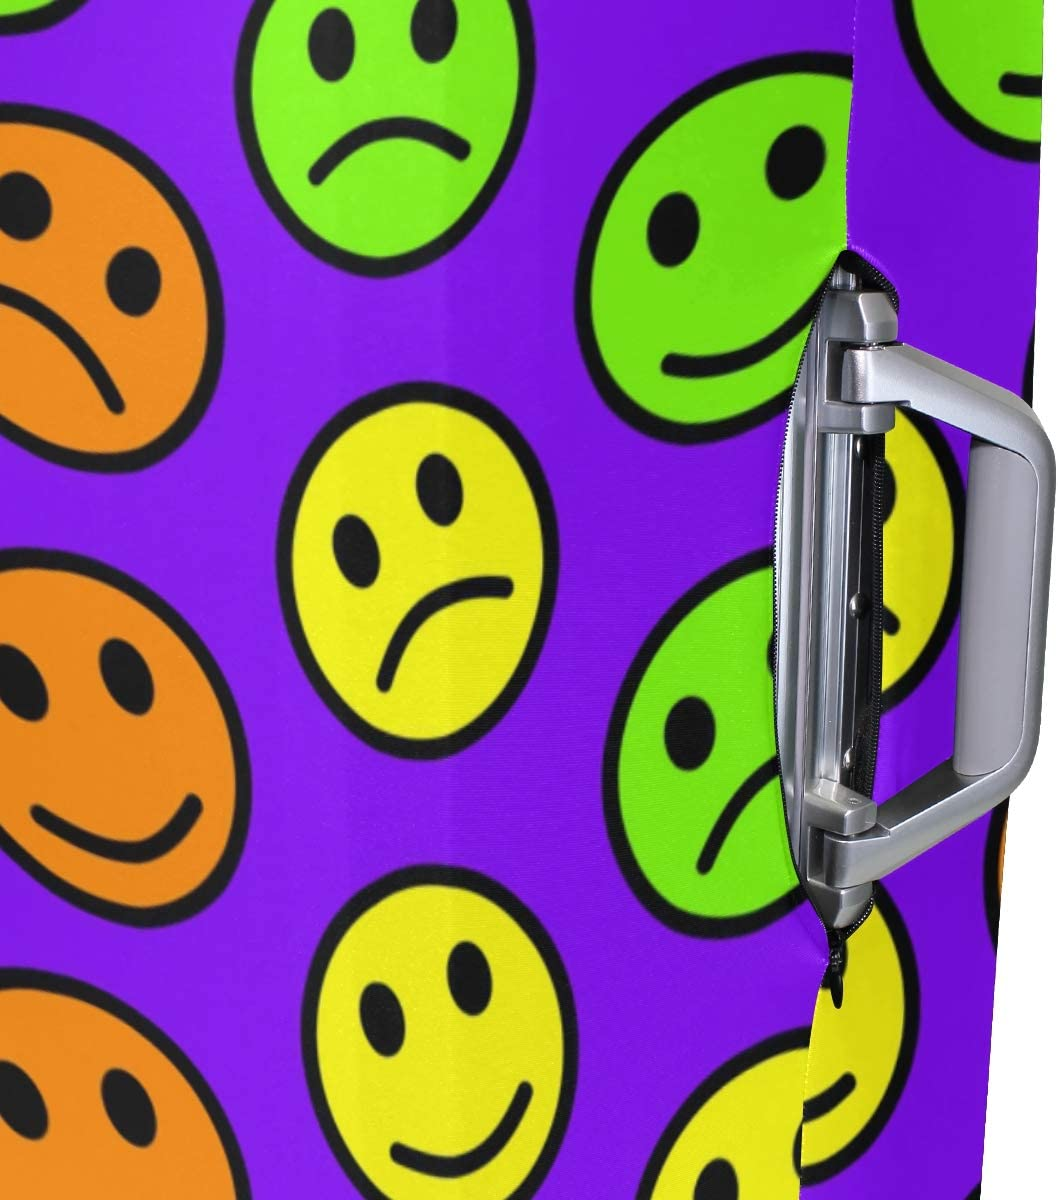 FOLPPLY Funny Colorful Emoji Smile Sad Luggage Cover Baggage Suitcase Travel Protector Fit for 18-32 Inch